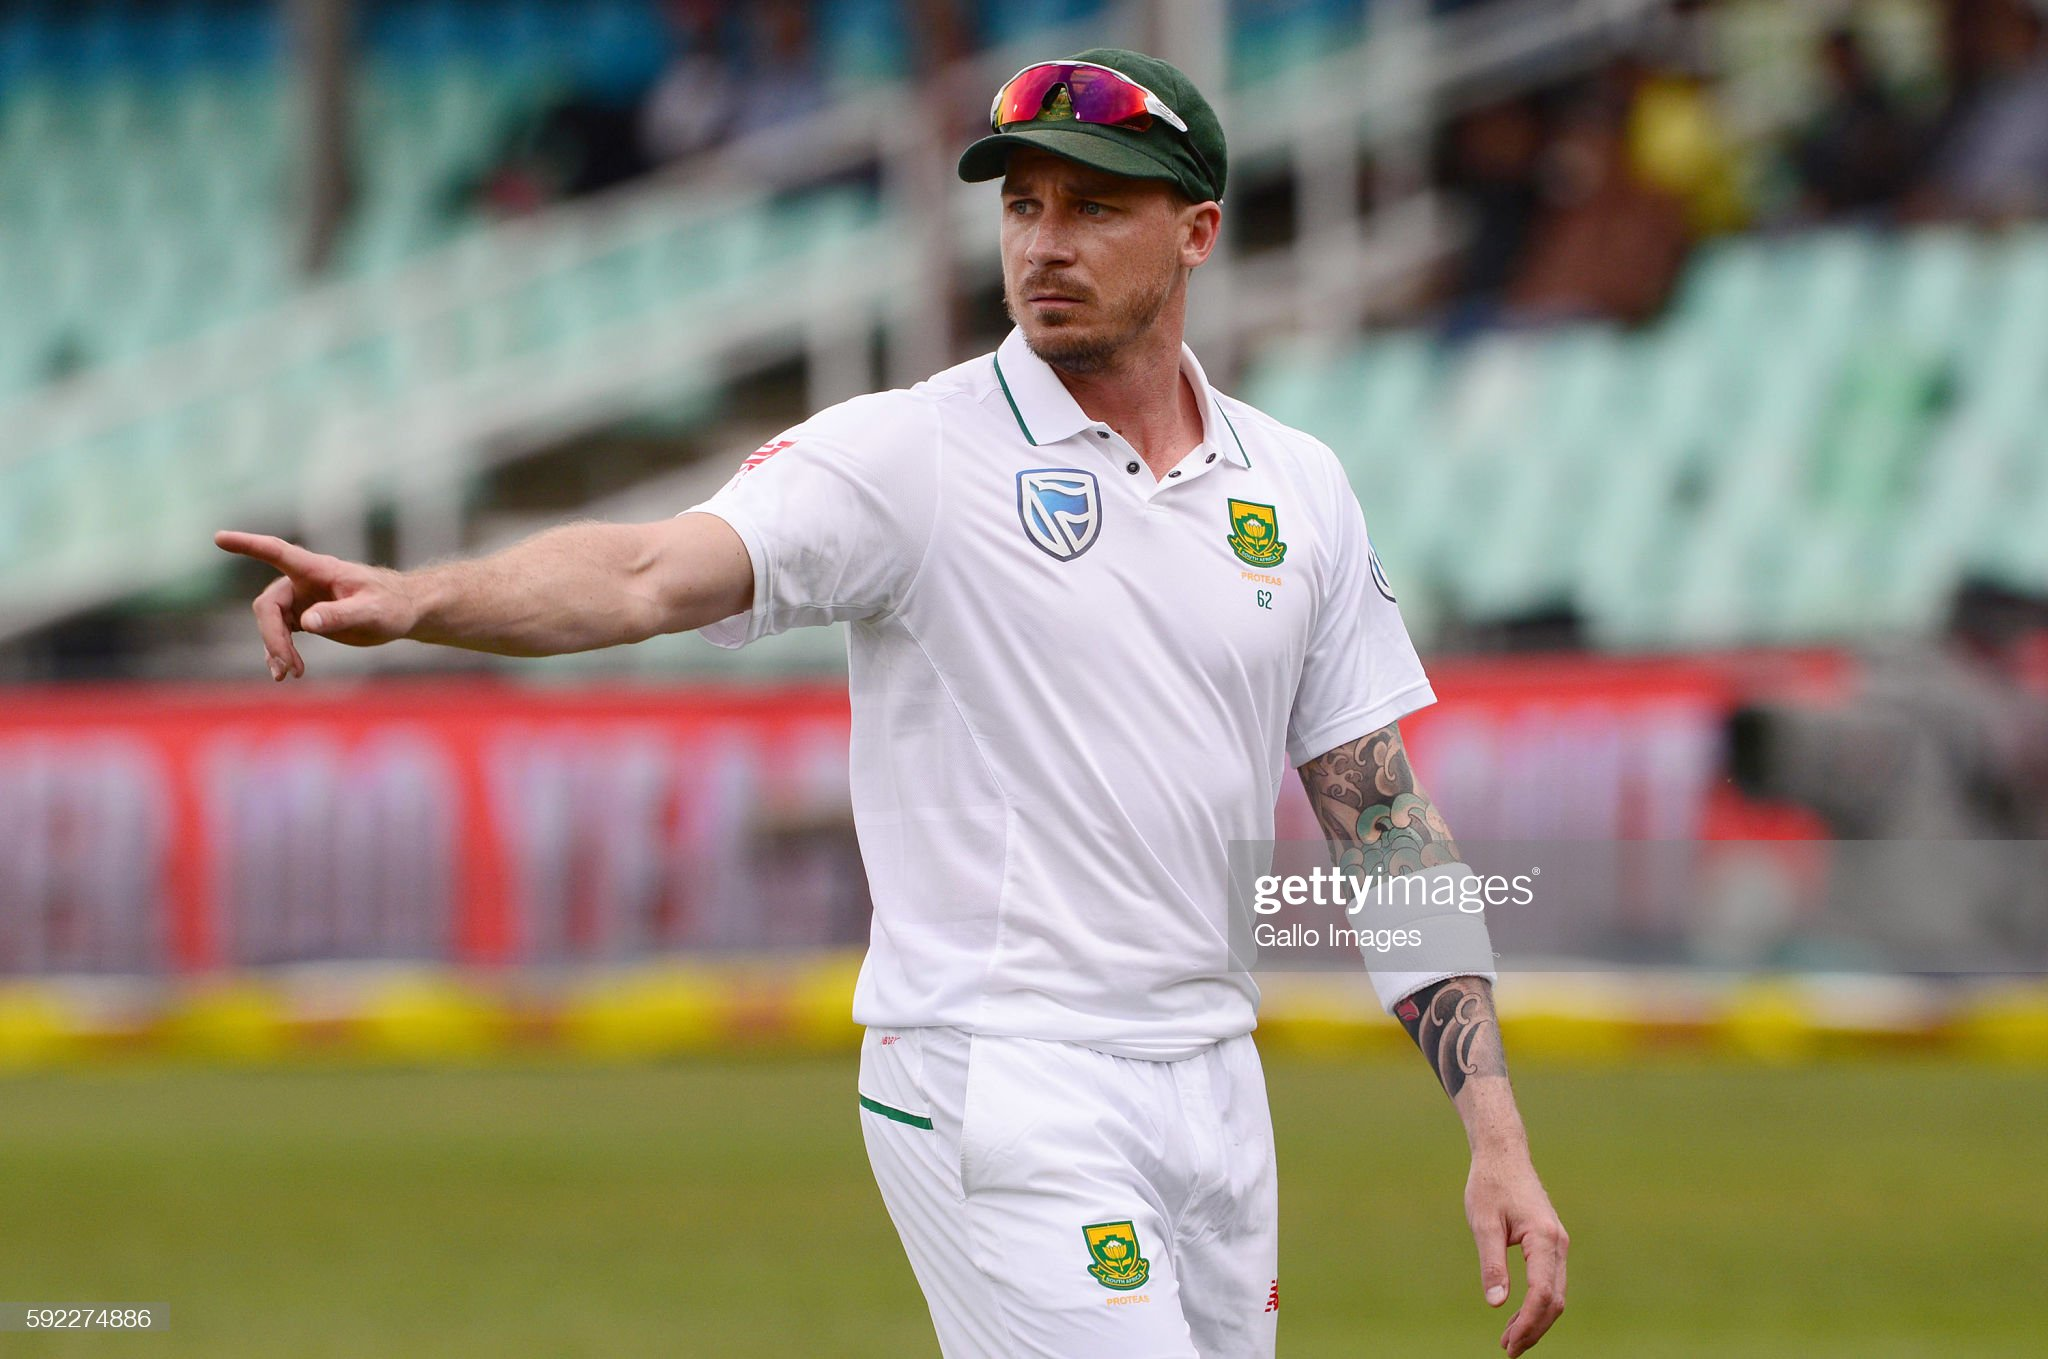 1st Sunfoil International Test: South Africa v New Zealand - Day 2 : News Photo